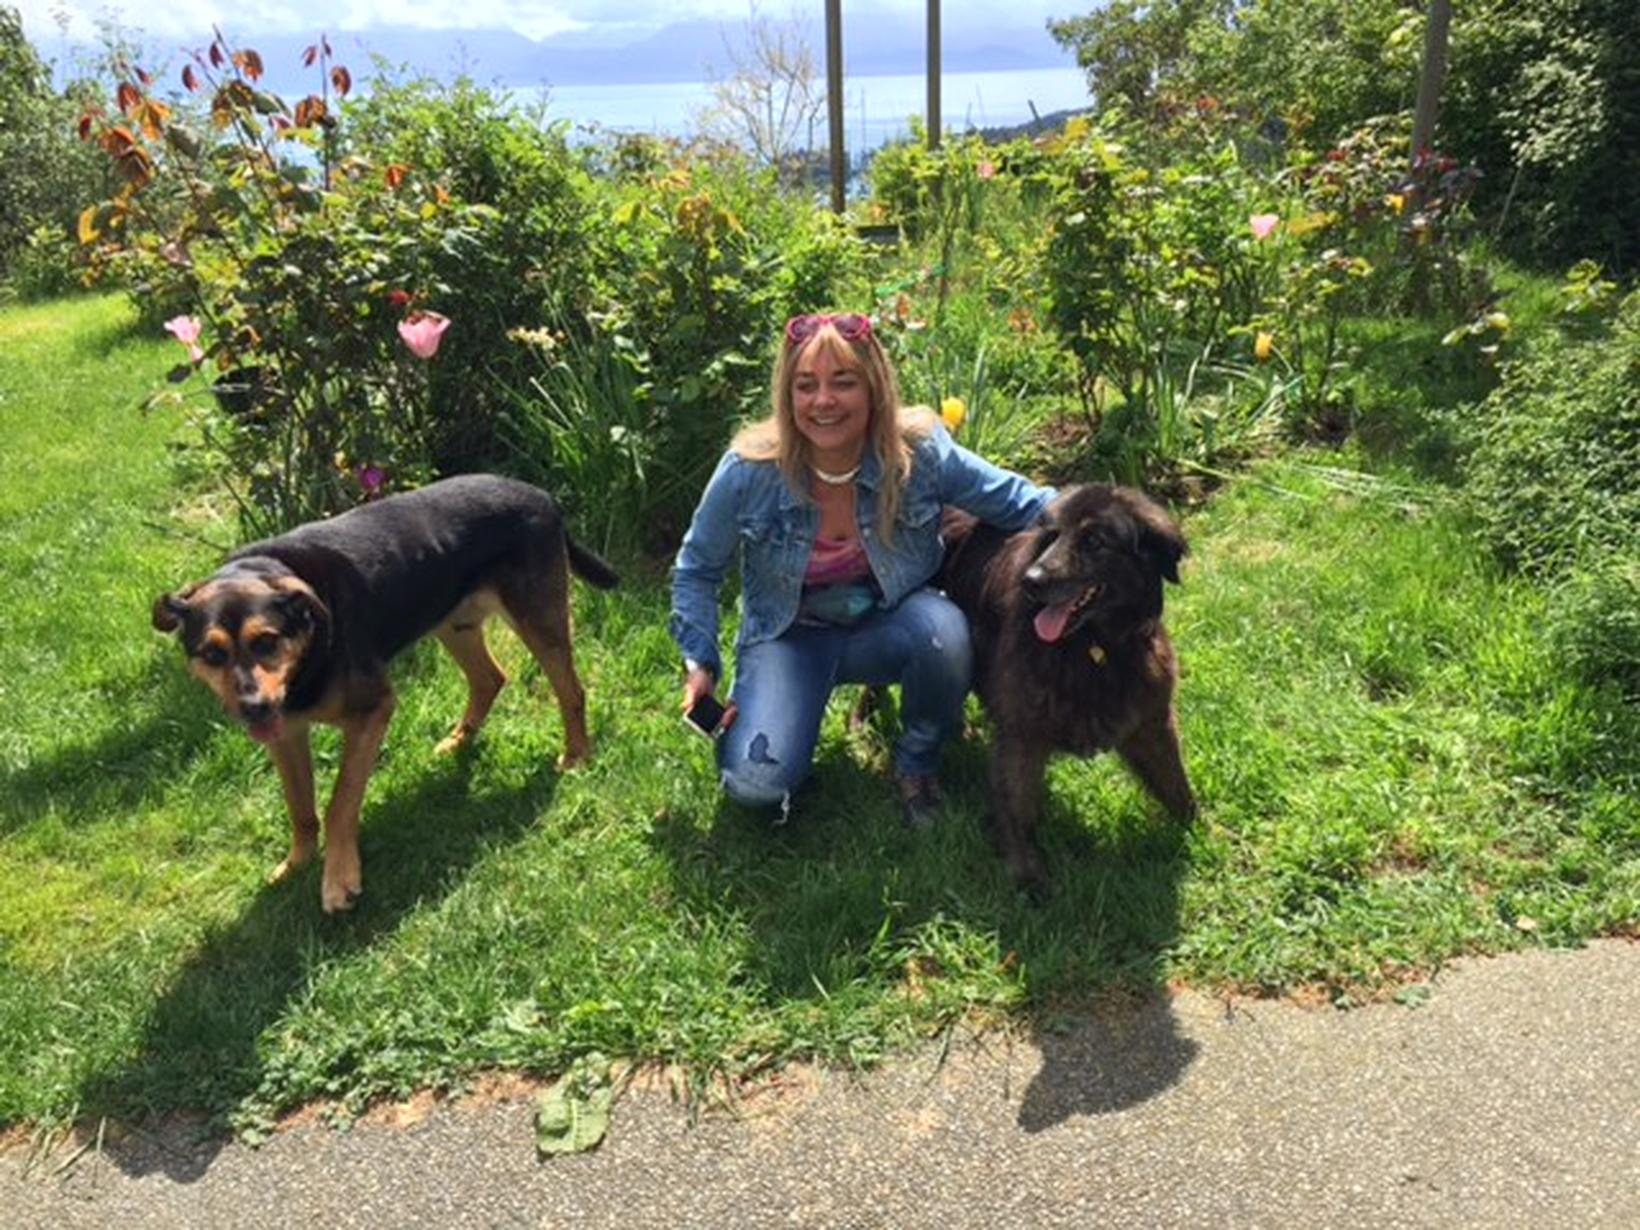 Conny from Vancouver, British Columbia, Canada